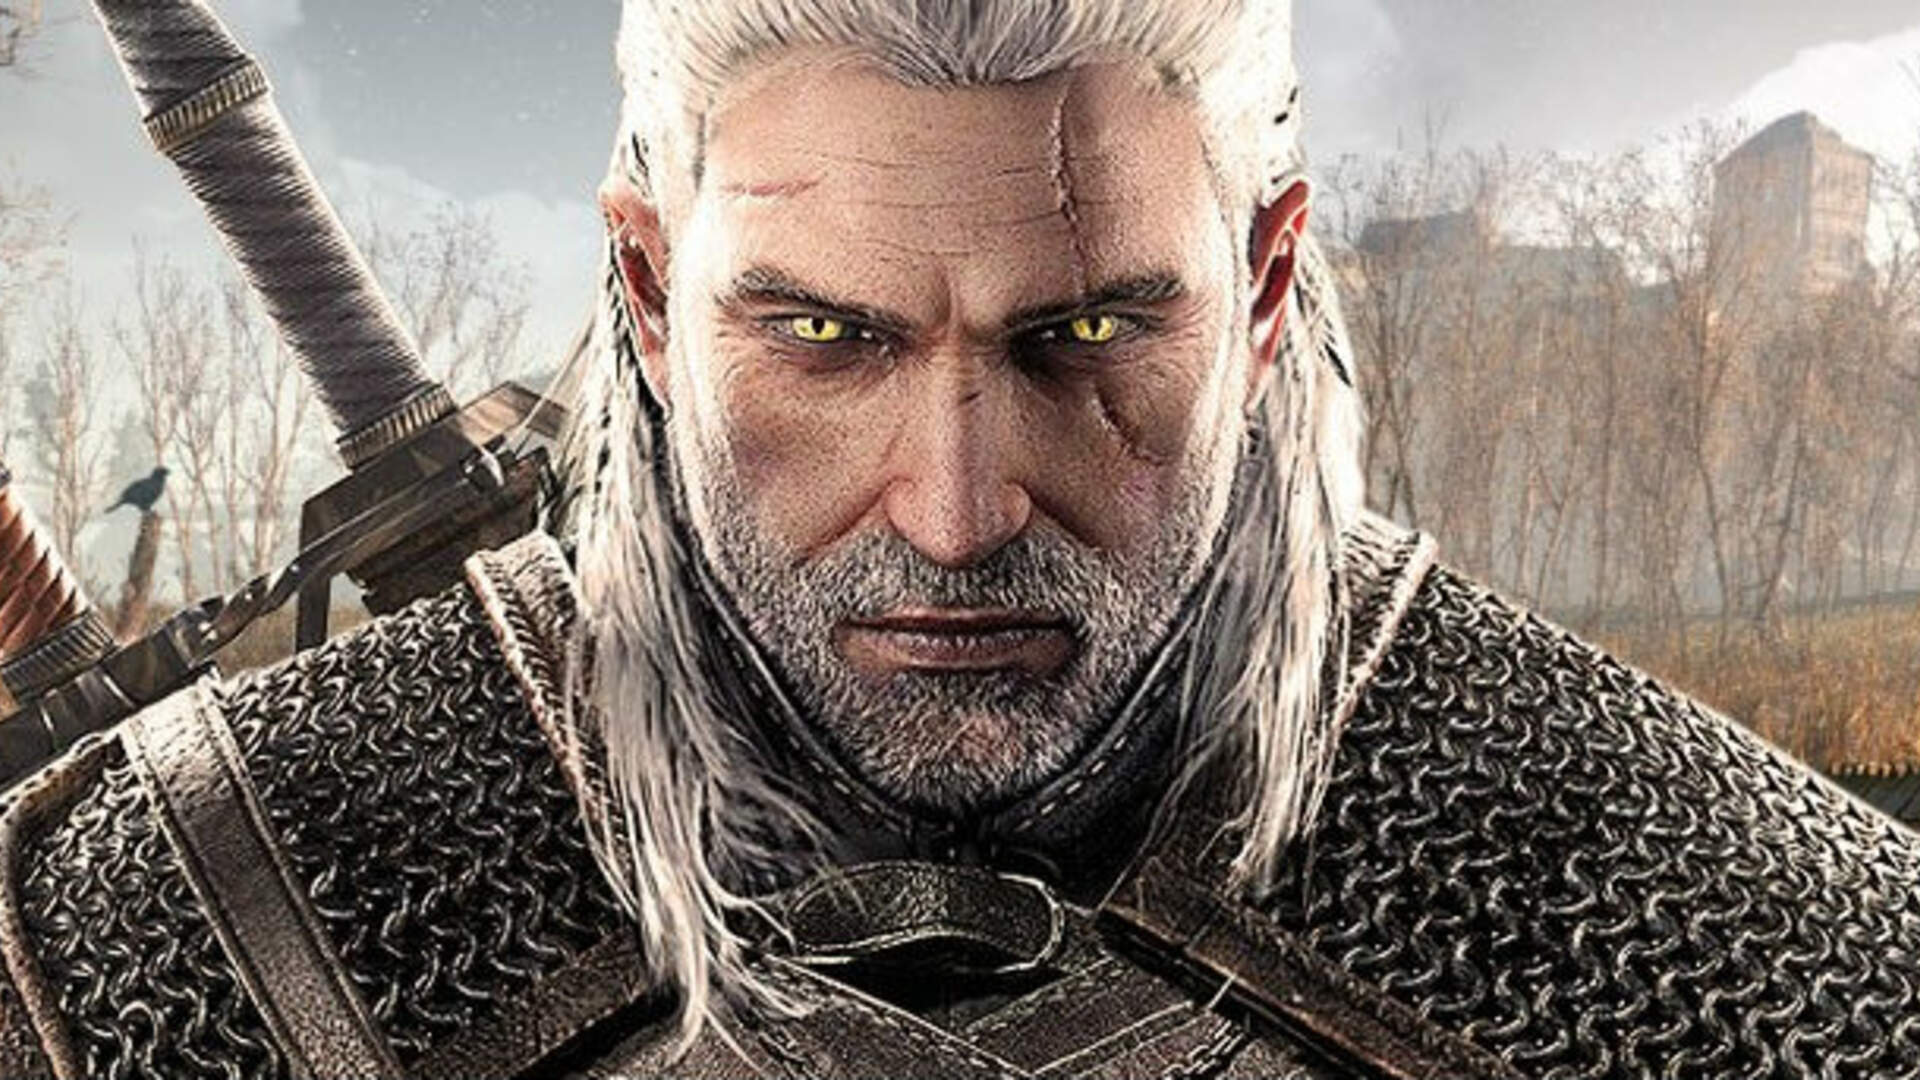 The Witcher 3 Finally Gets HDR Support on PS4 Pro, But Users are Reporting New Bugs